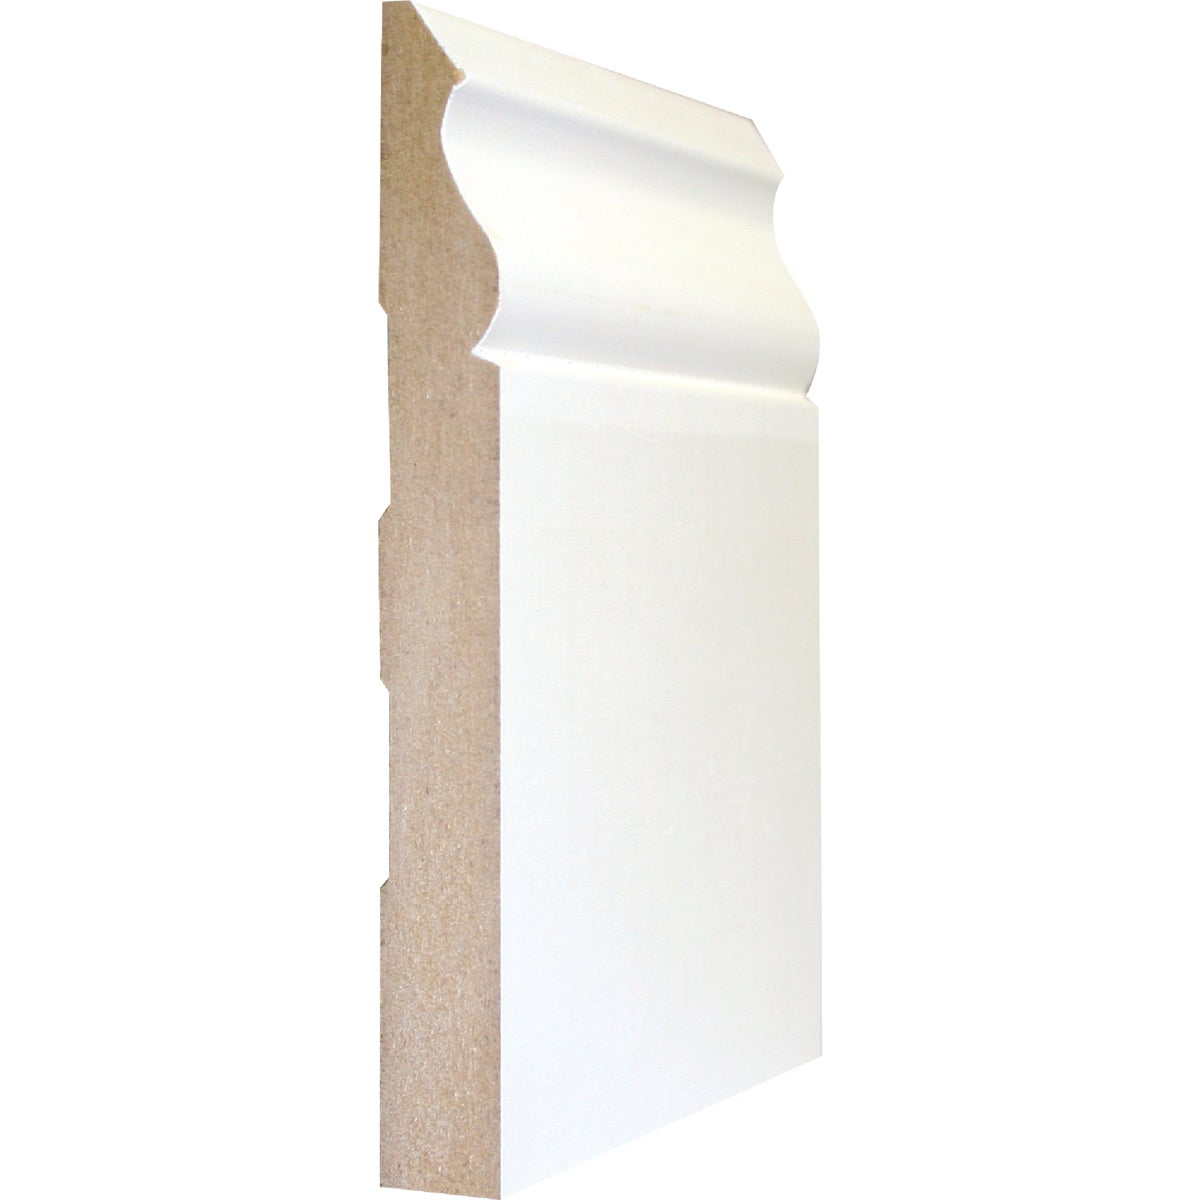 5-1/4X8' PMDF COL BASE - 163E8MDFP by Jim White Millwork